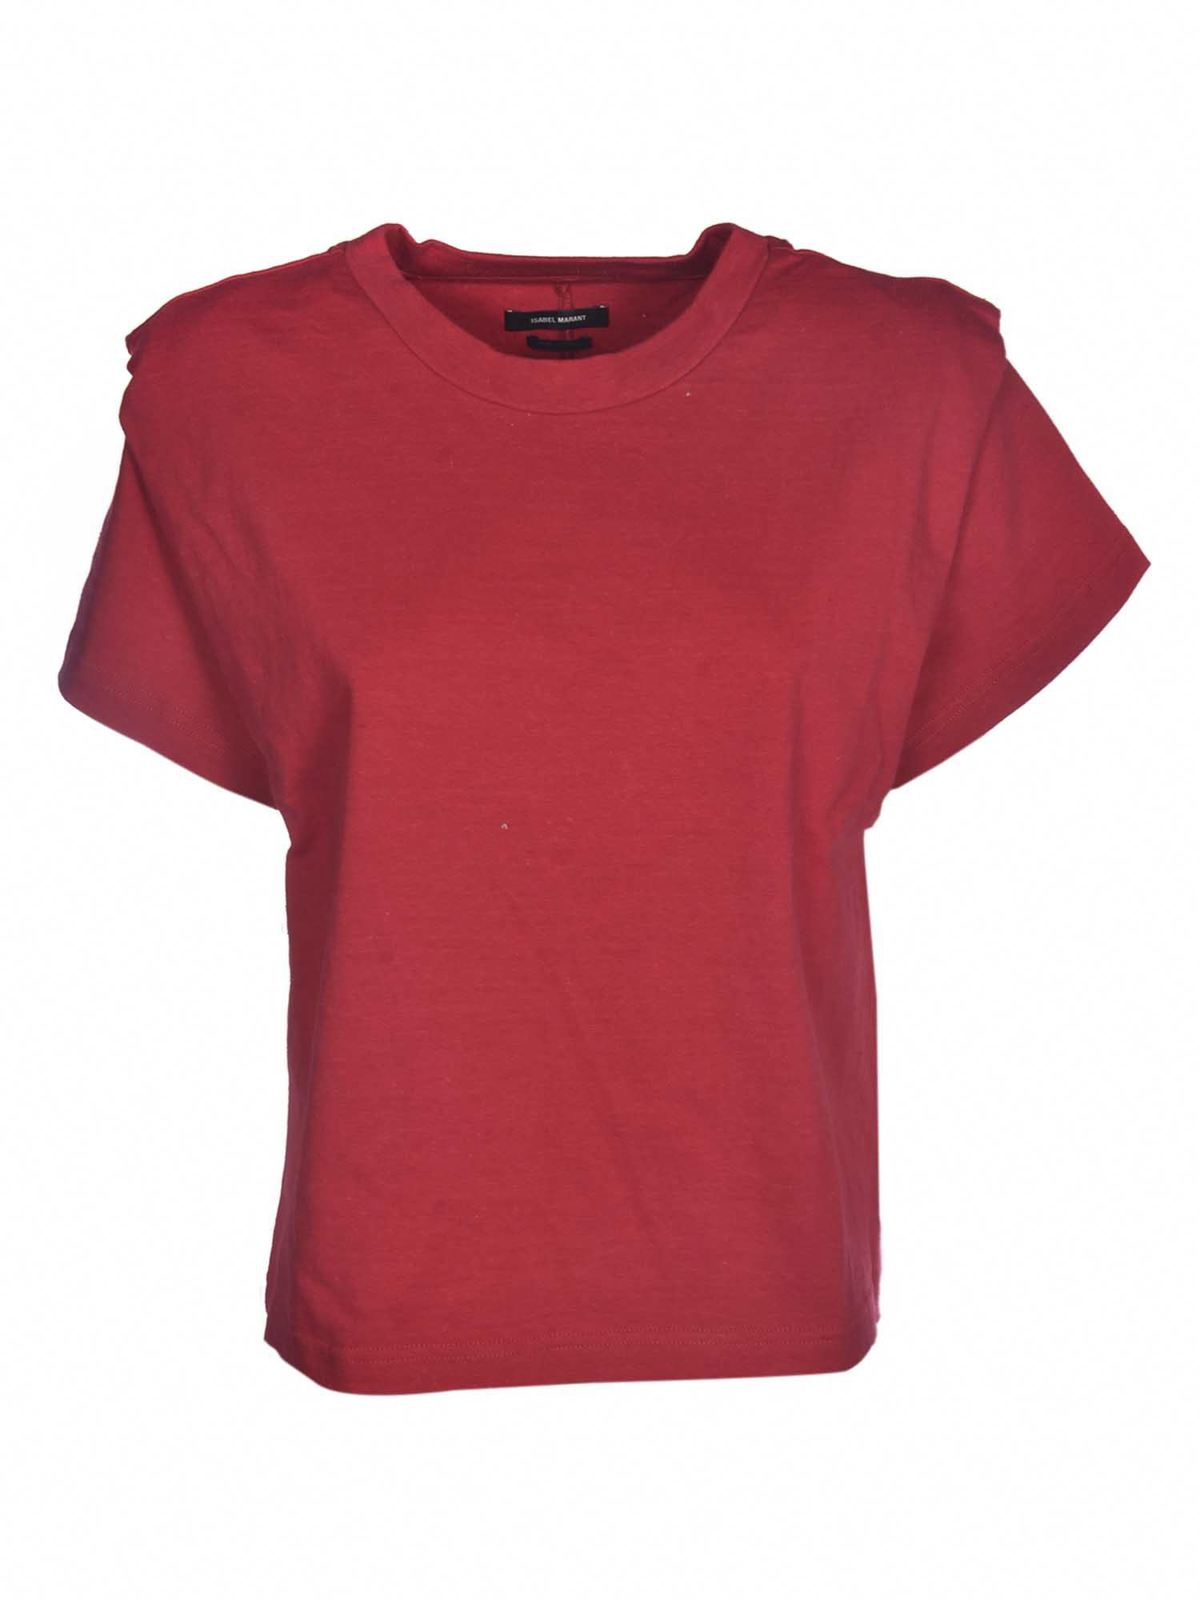 Isabel Marant Cottons ZELITOS T-SHIRT IN RED